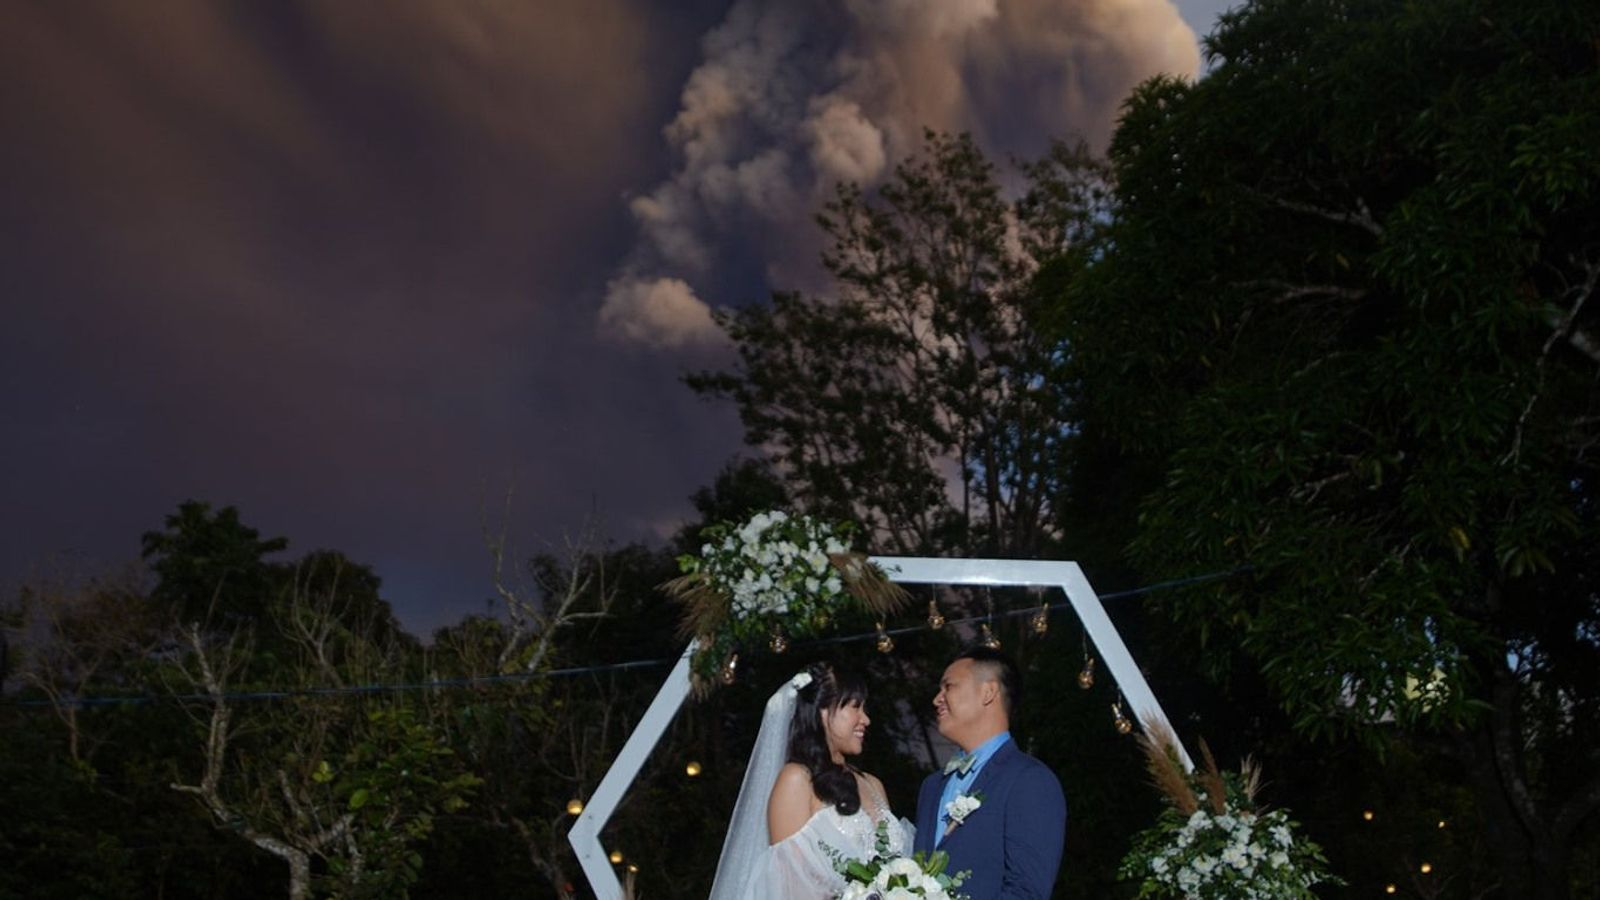 Couple get married despite volcano erupting nearby